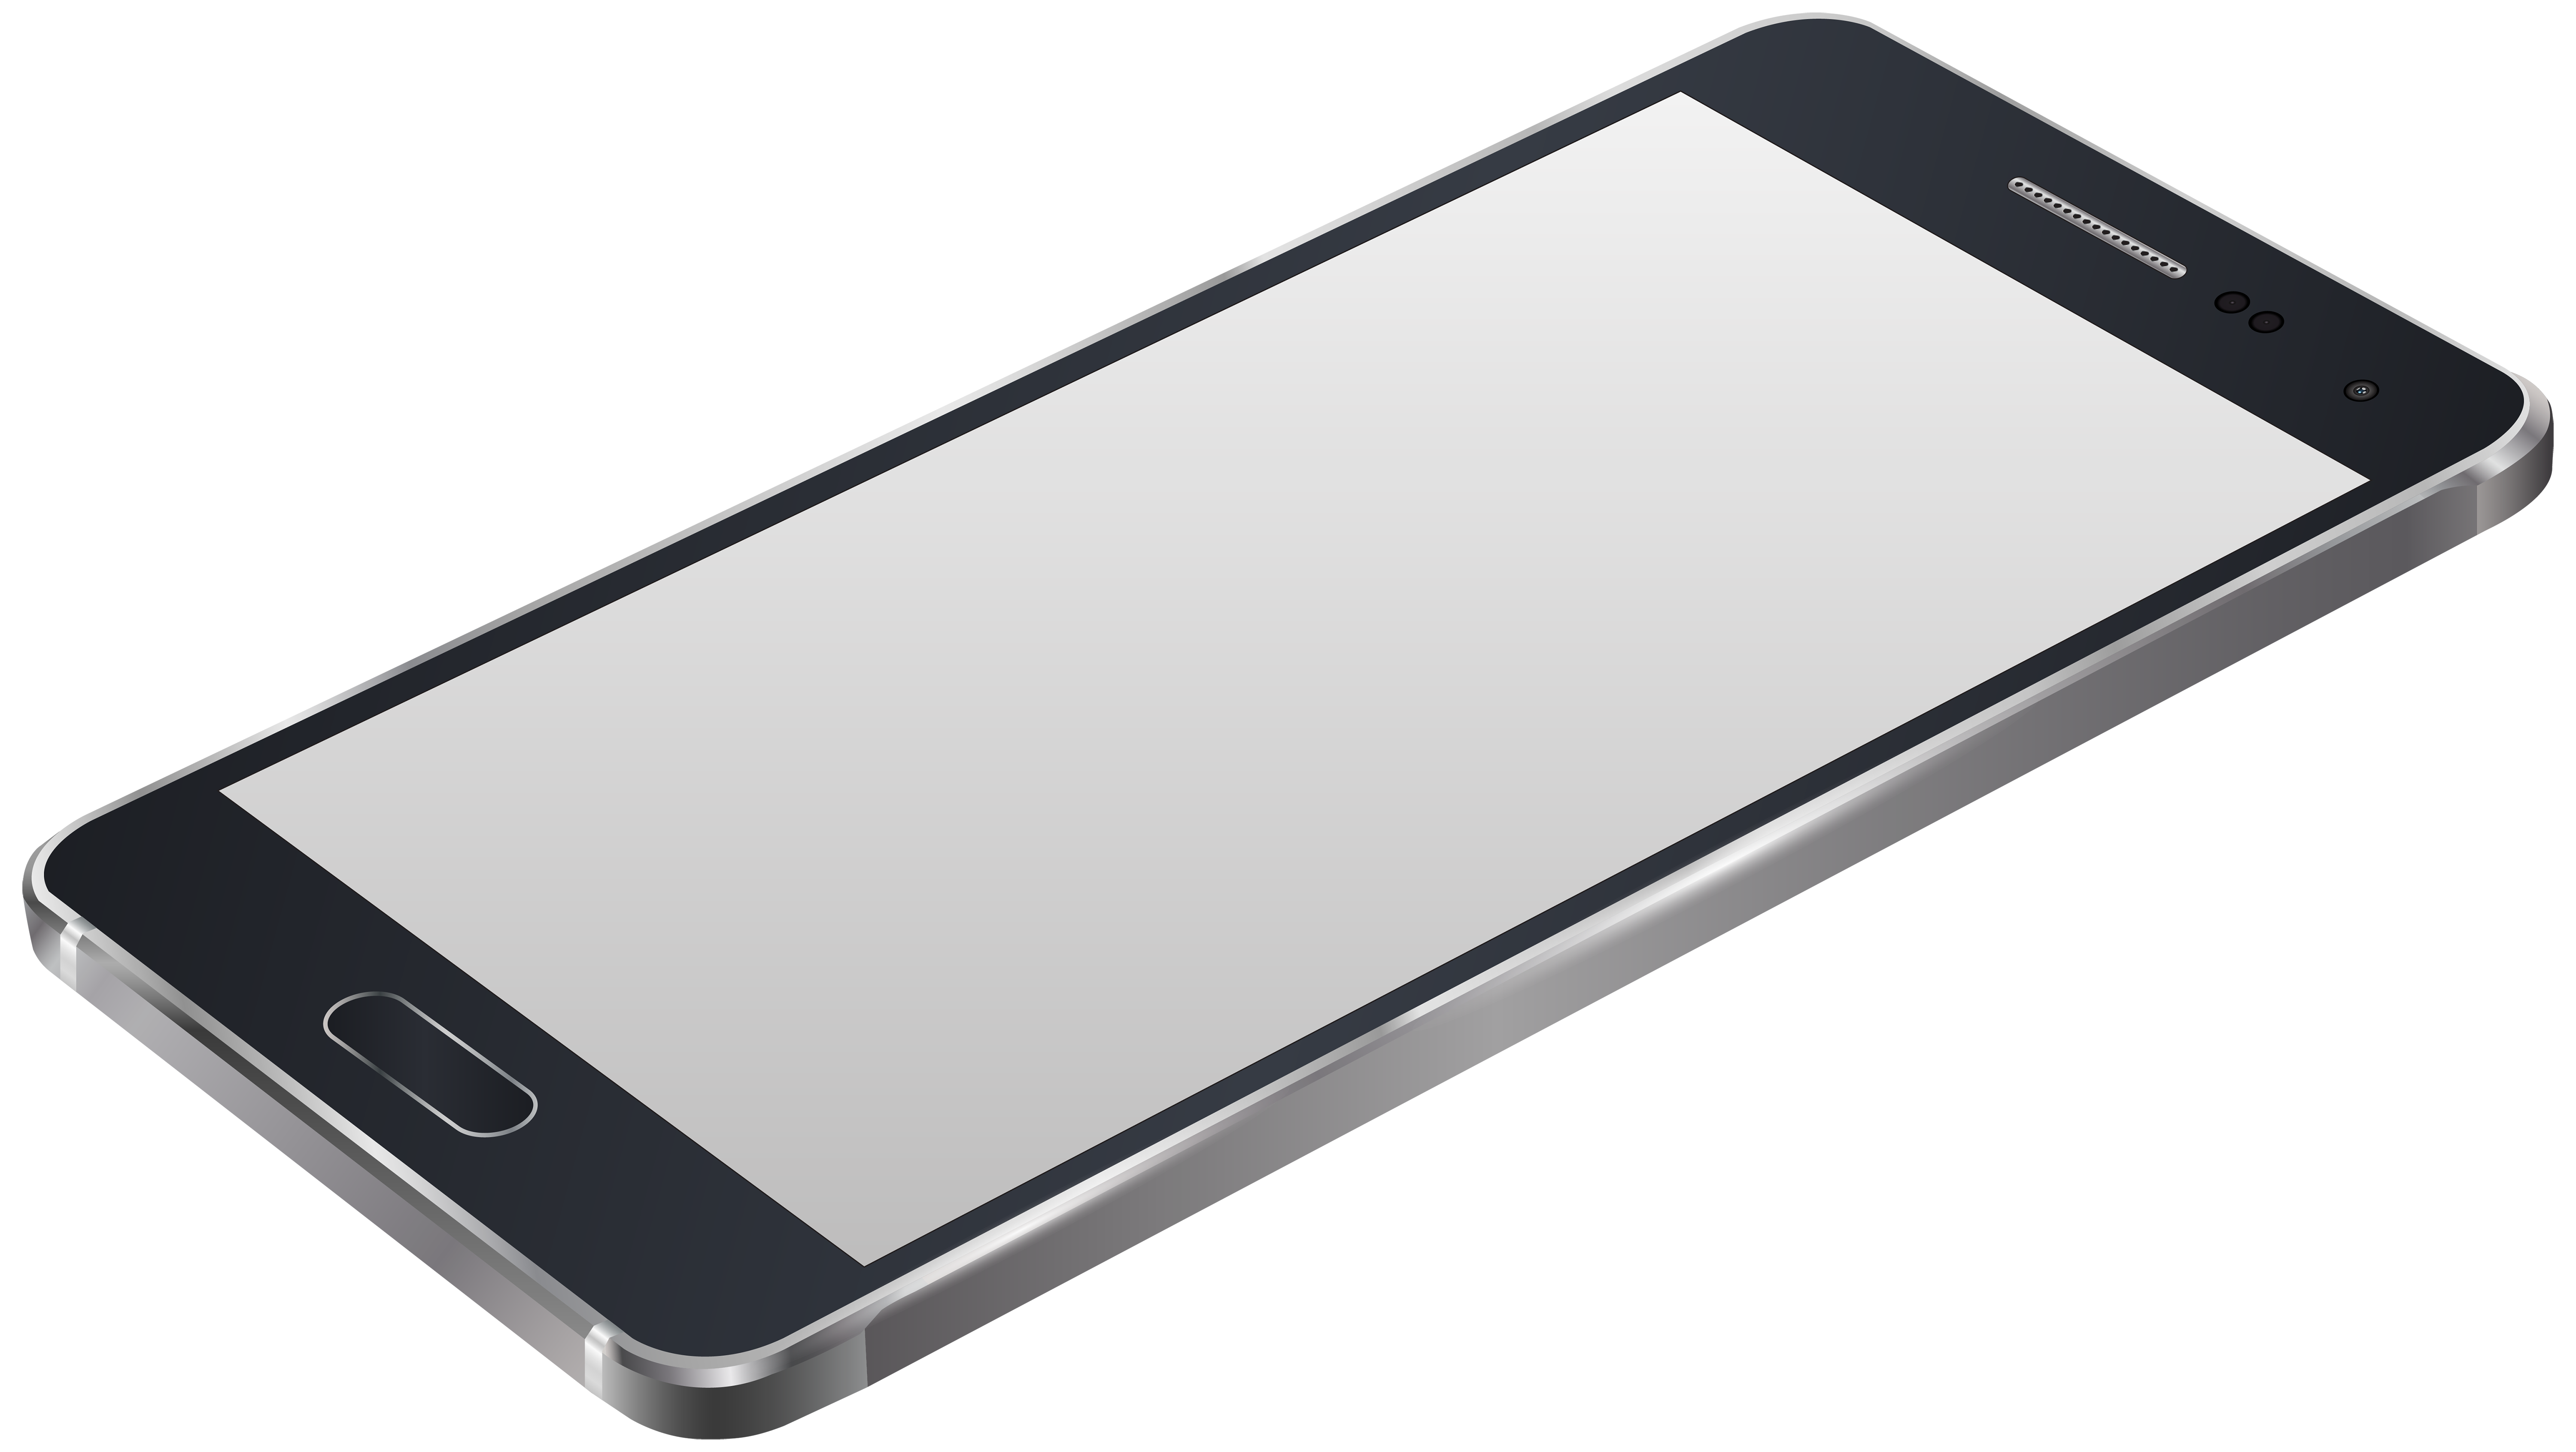 svg black and white Mobile clipart frame. Grey smartphone png clip.